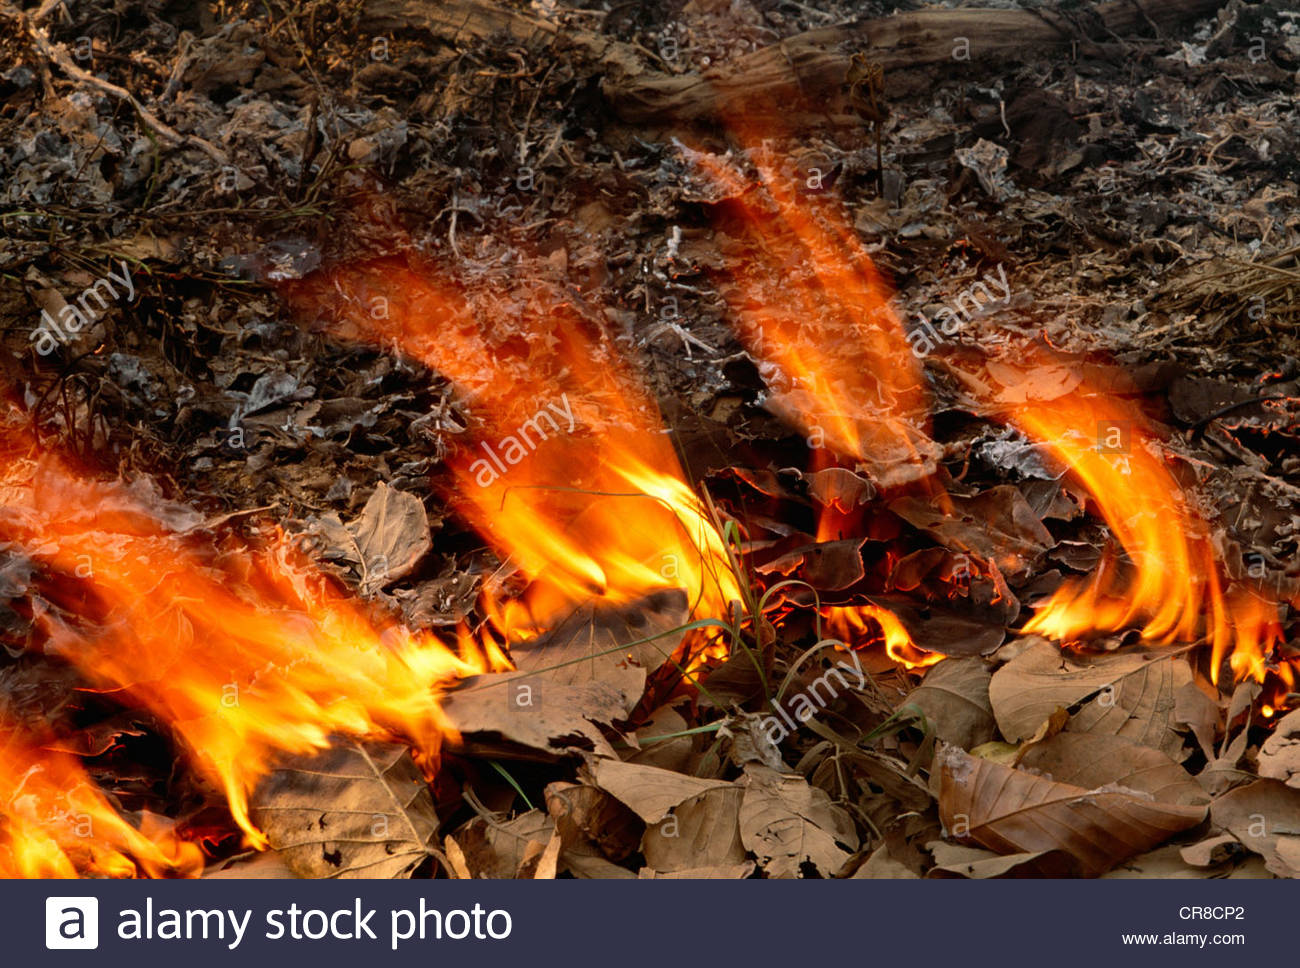 Controlled fire for wildfire prevention, Kanha National Park, India - Stock Image